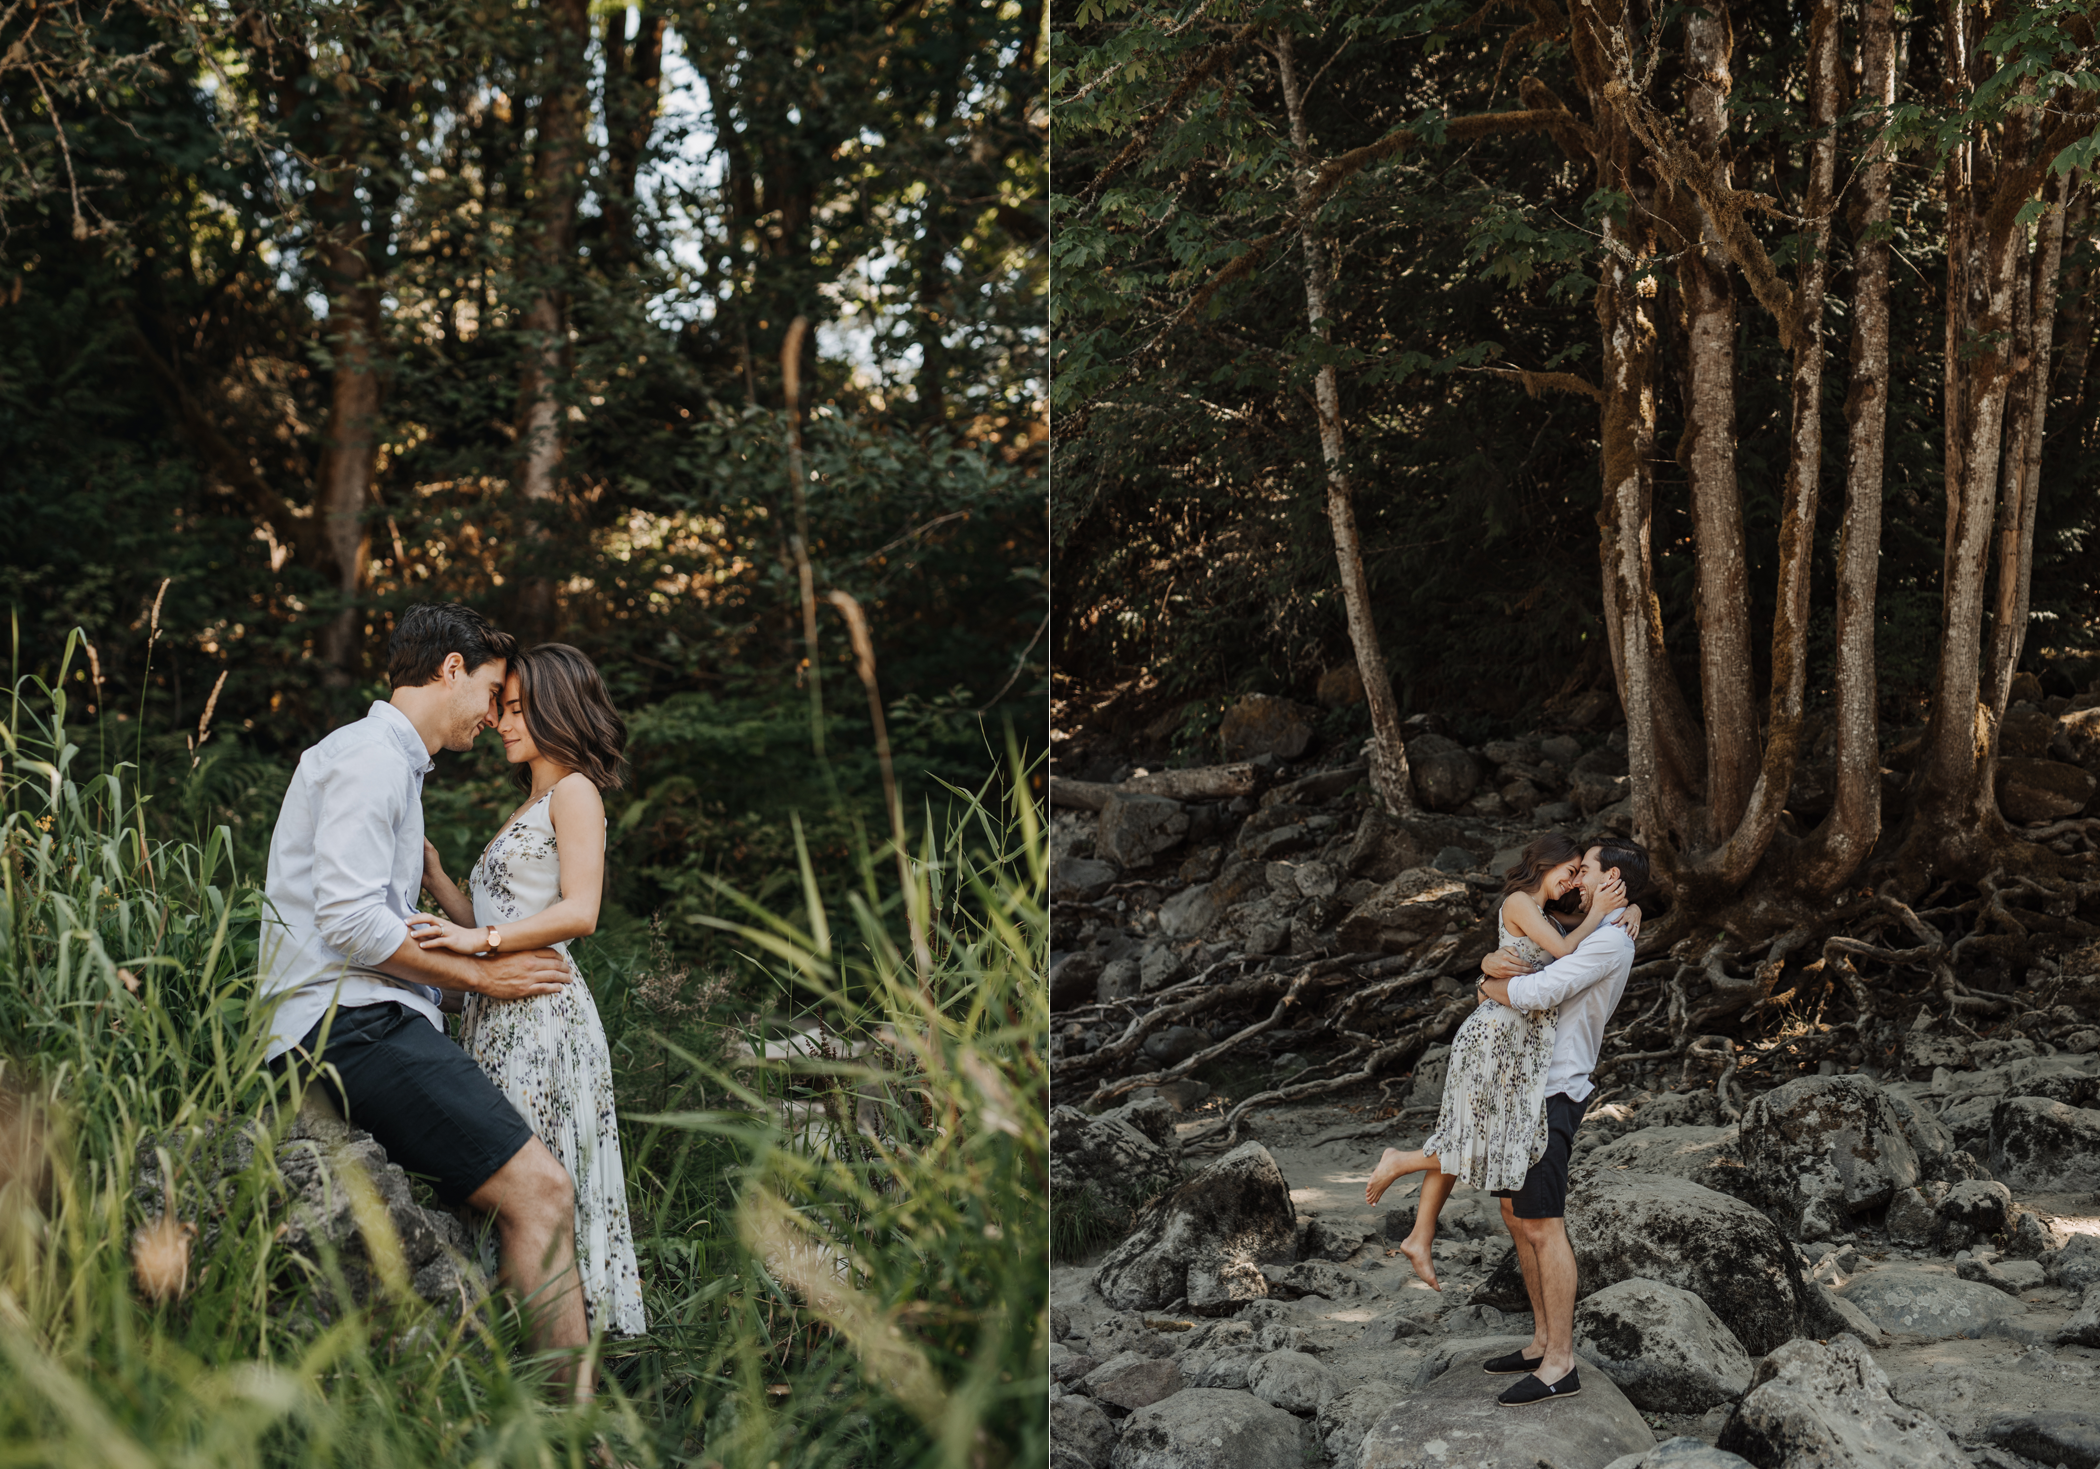 016-kaoverii-silva-ca-prewedding-vancouver-photography.png